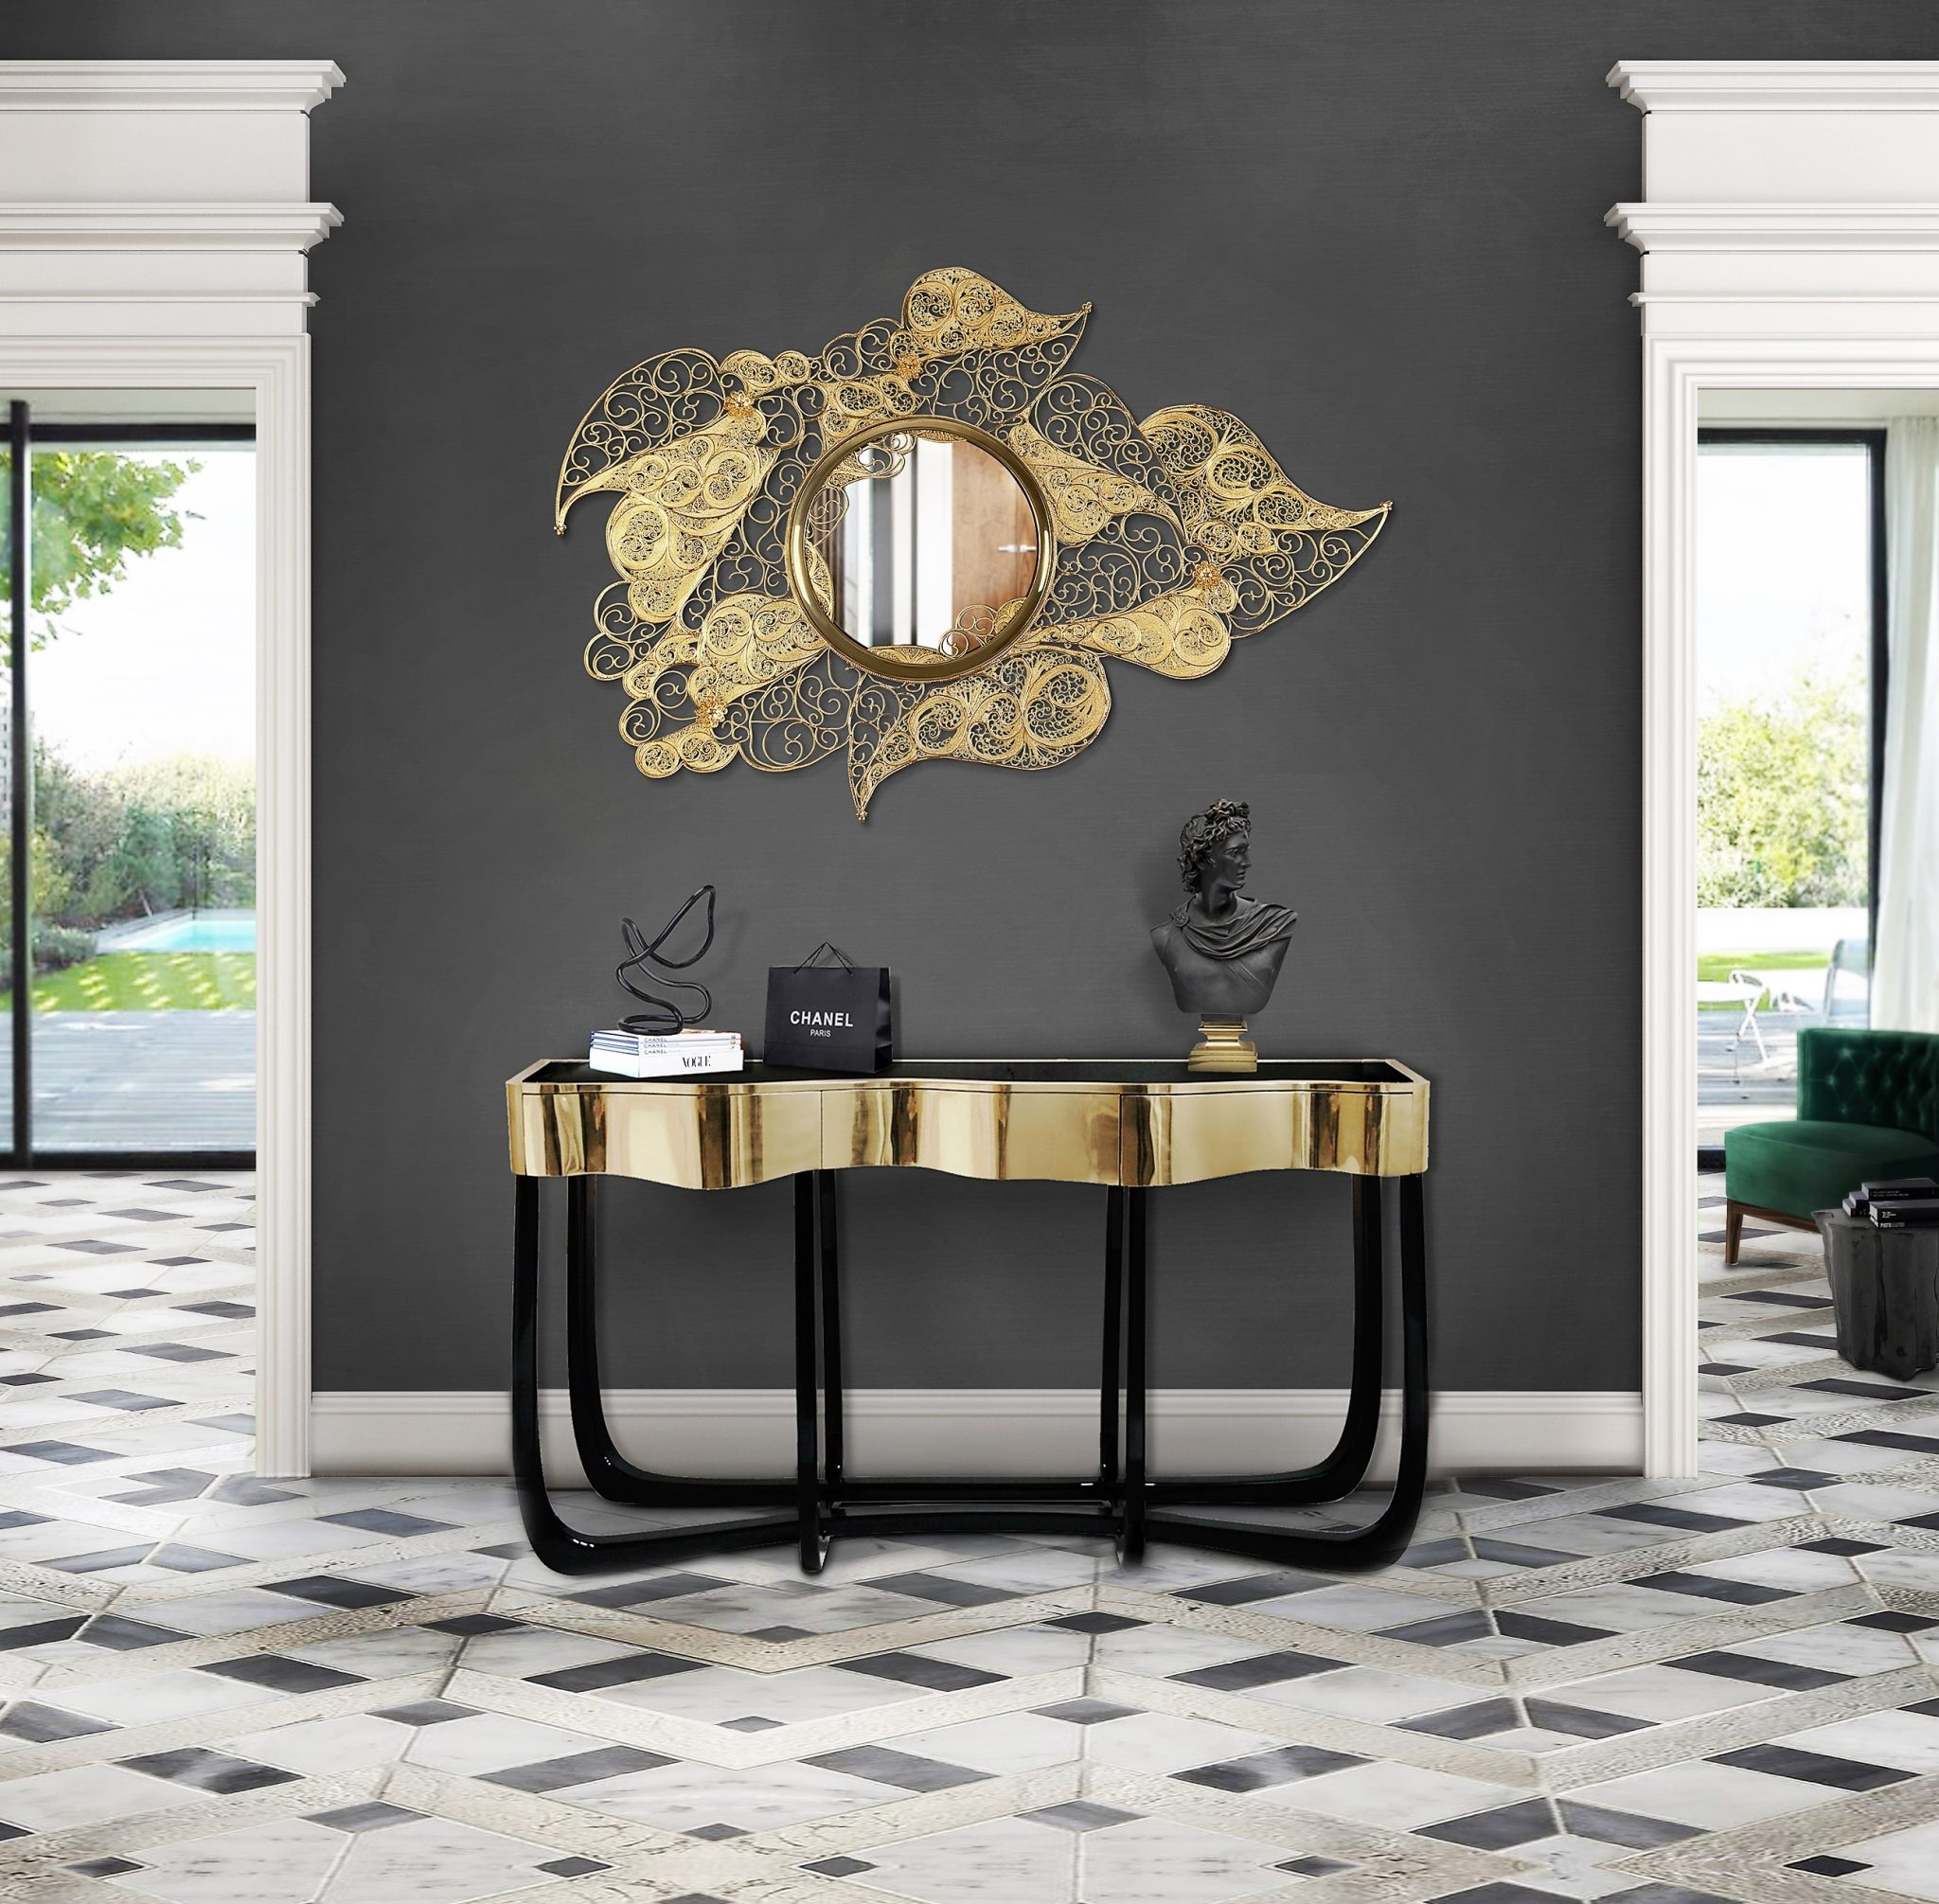 mirrors The Most Exclusive Mirrors By Boca do Lobo filigree 01 4